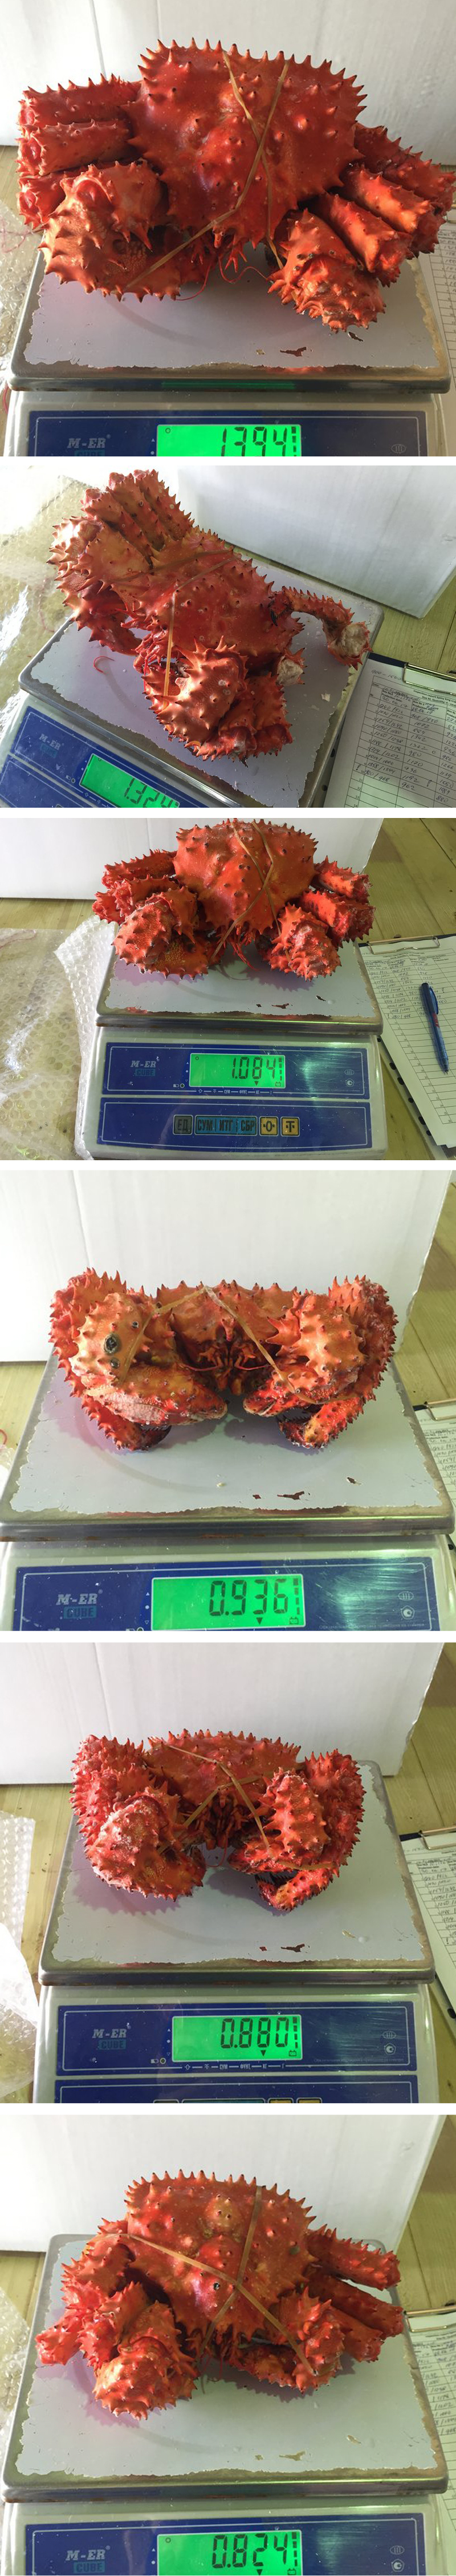 authentic Quality Frozen Red King Crab From Russia at Factory Price